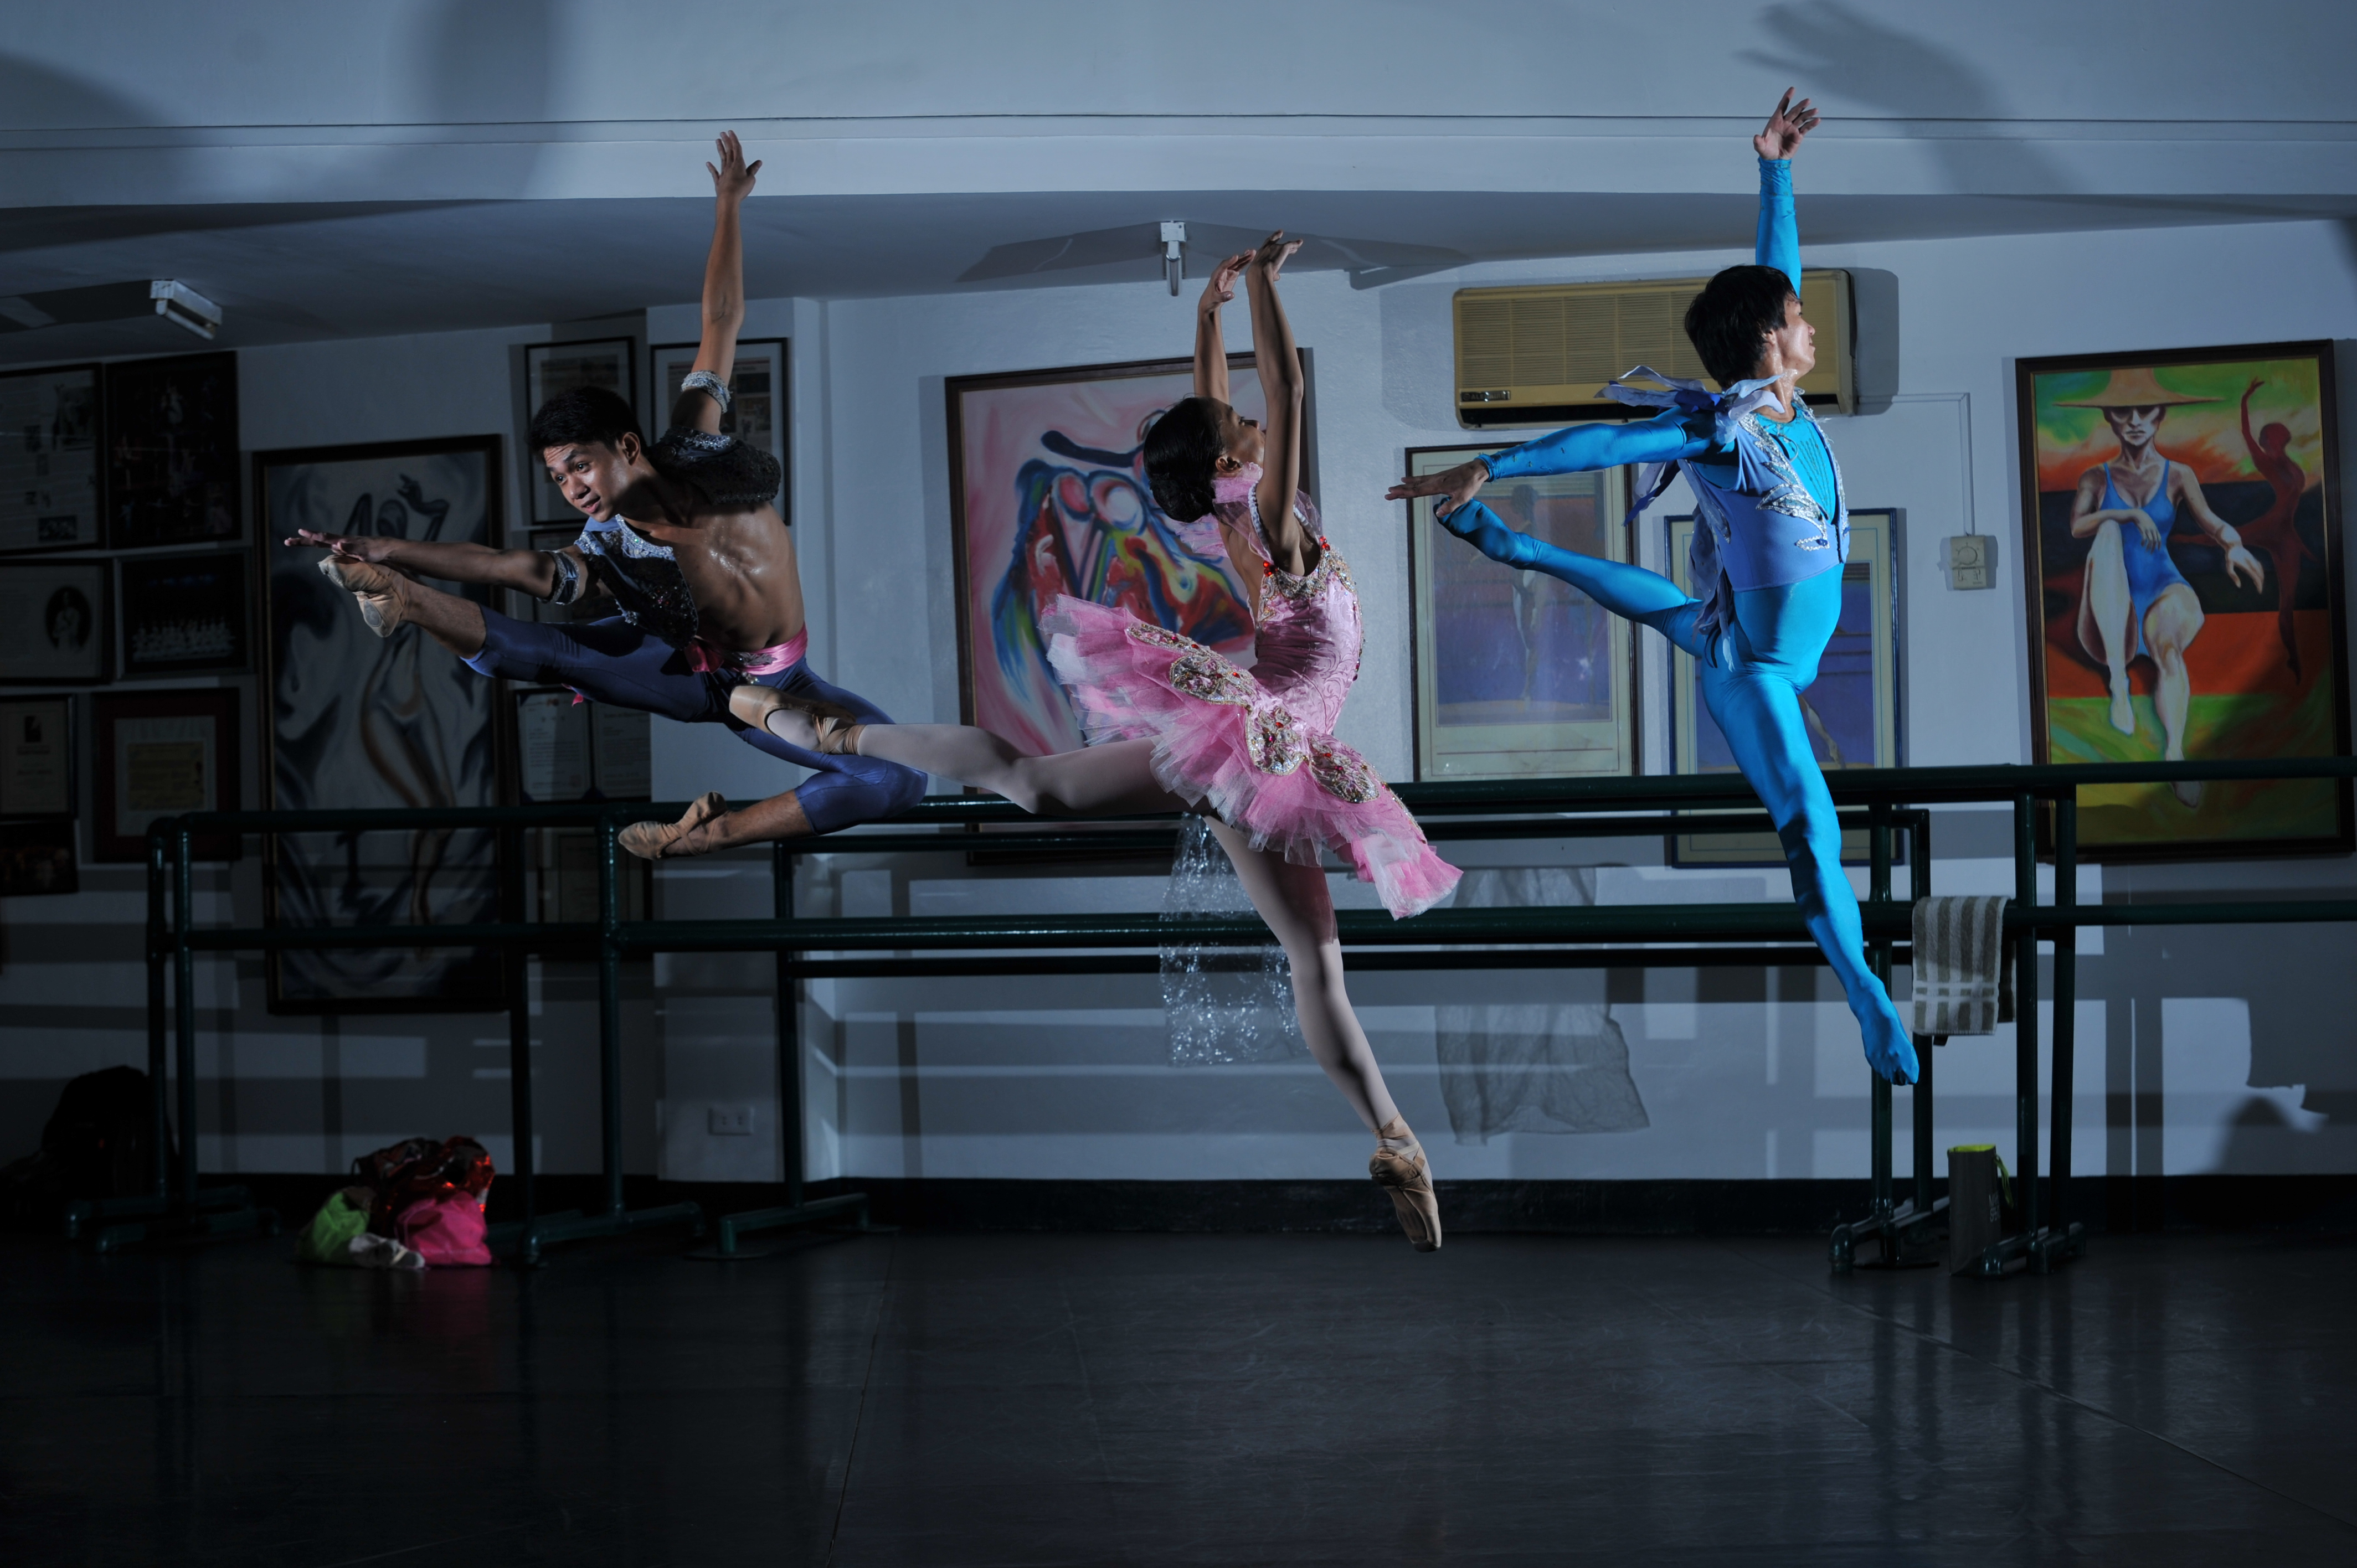 Jamil, Jessa and Raymart are ballet dancers — poised, elegant, beautiful, and poor